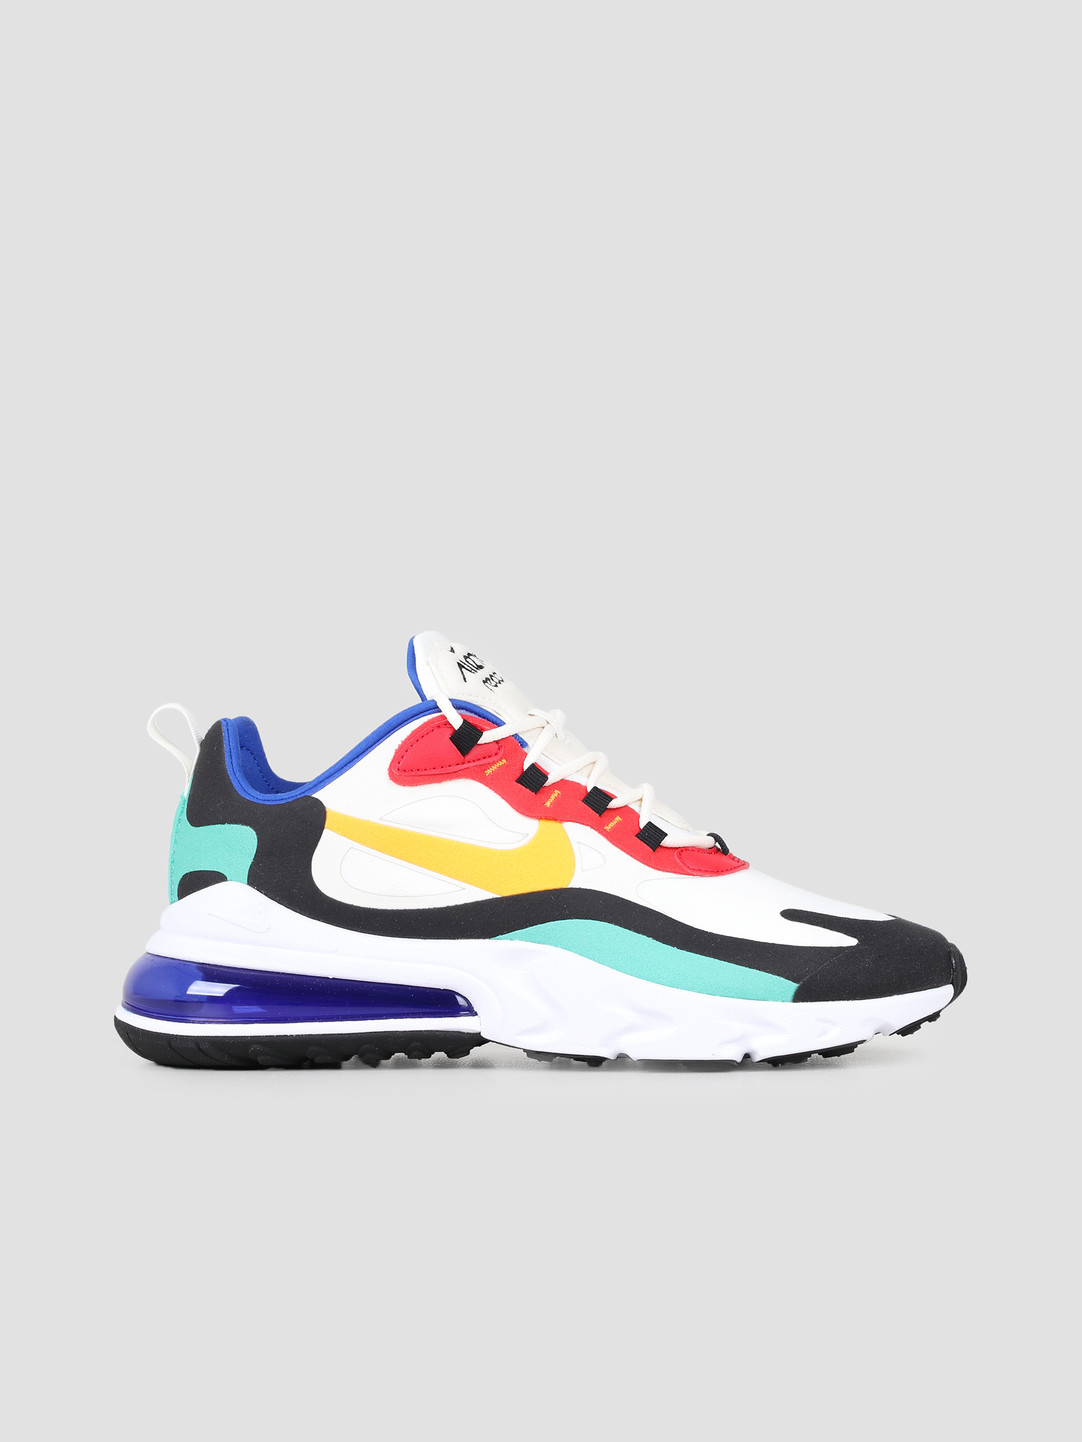 le dernier 6b528 2f134 Nike Air Max 270 React Phantom University Gold University Red AO4971-002